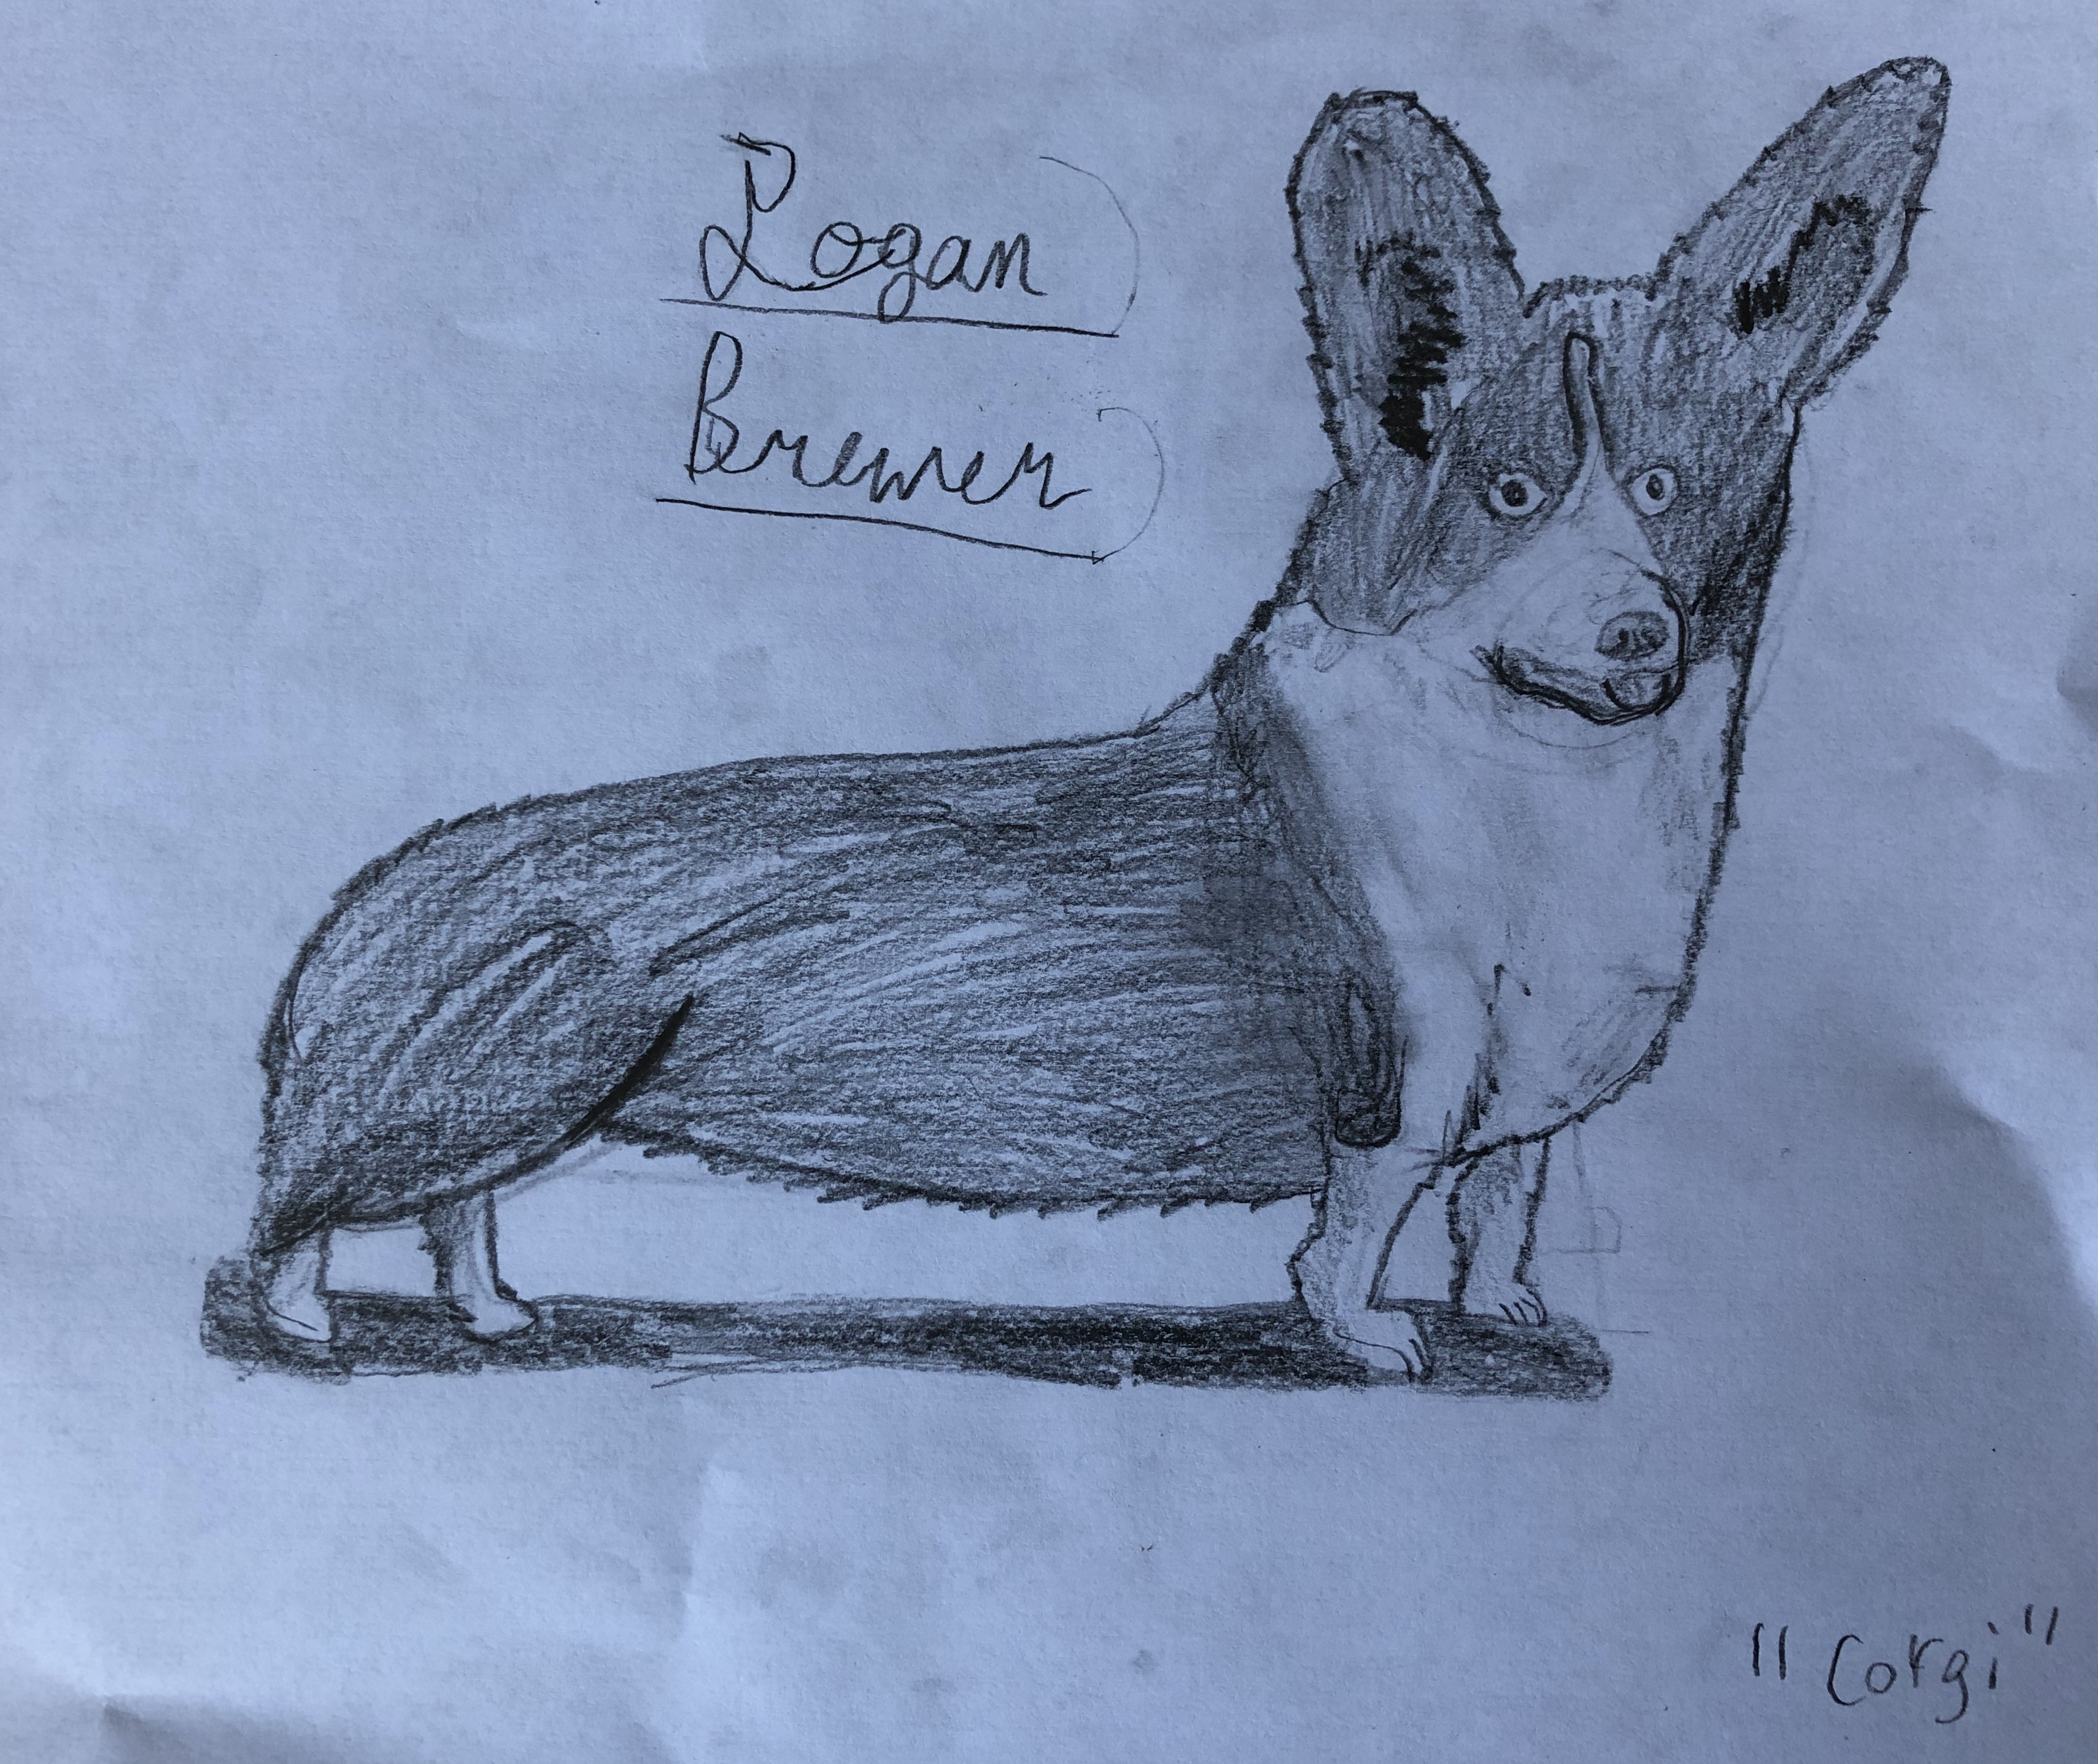 Corgi by Logan Brewer